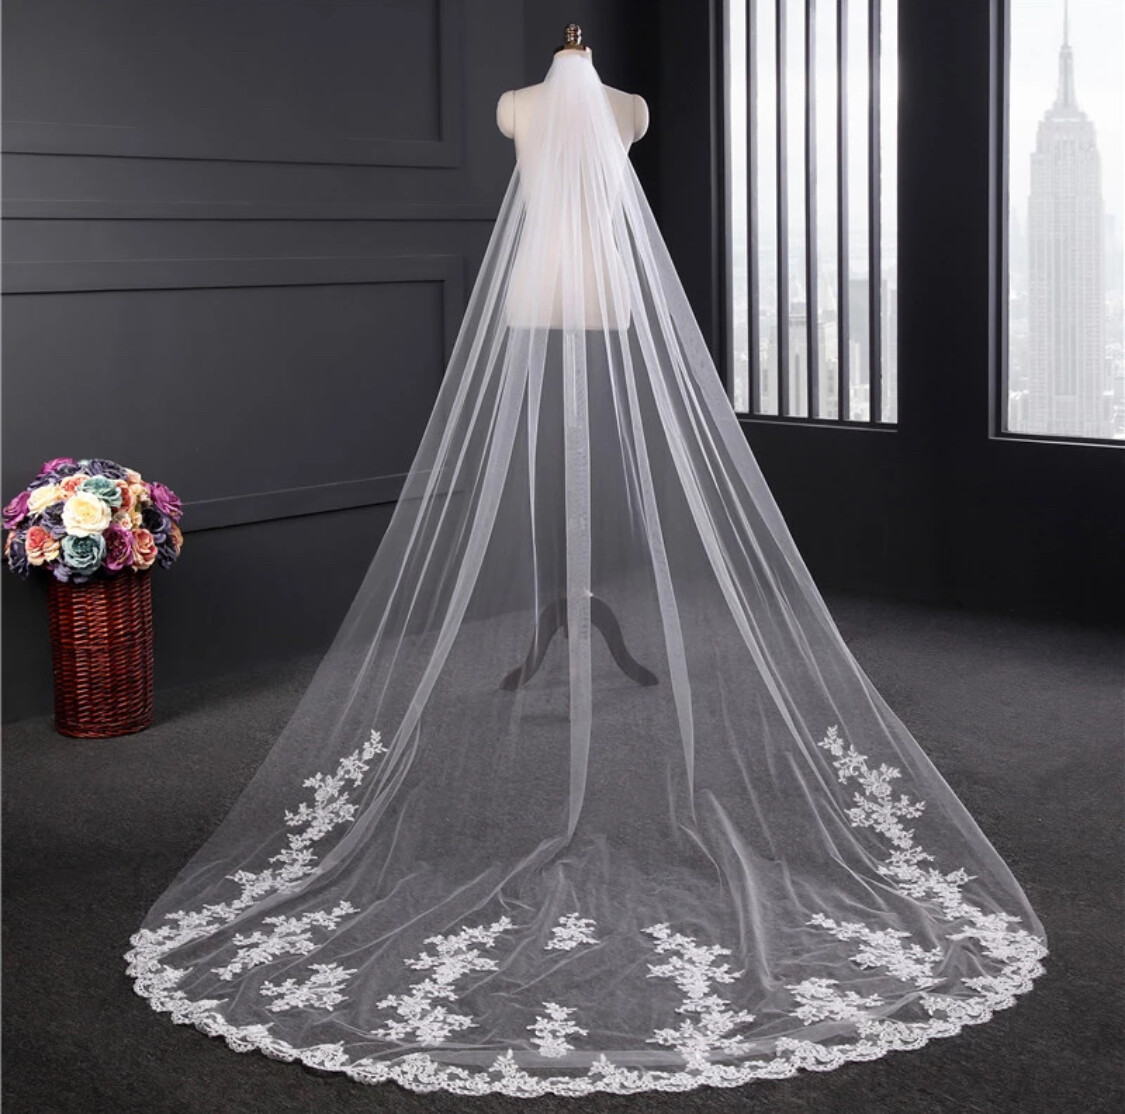 One-tier 3M Lace Applique Edge Cathedral Wedding Veil White or Ivory